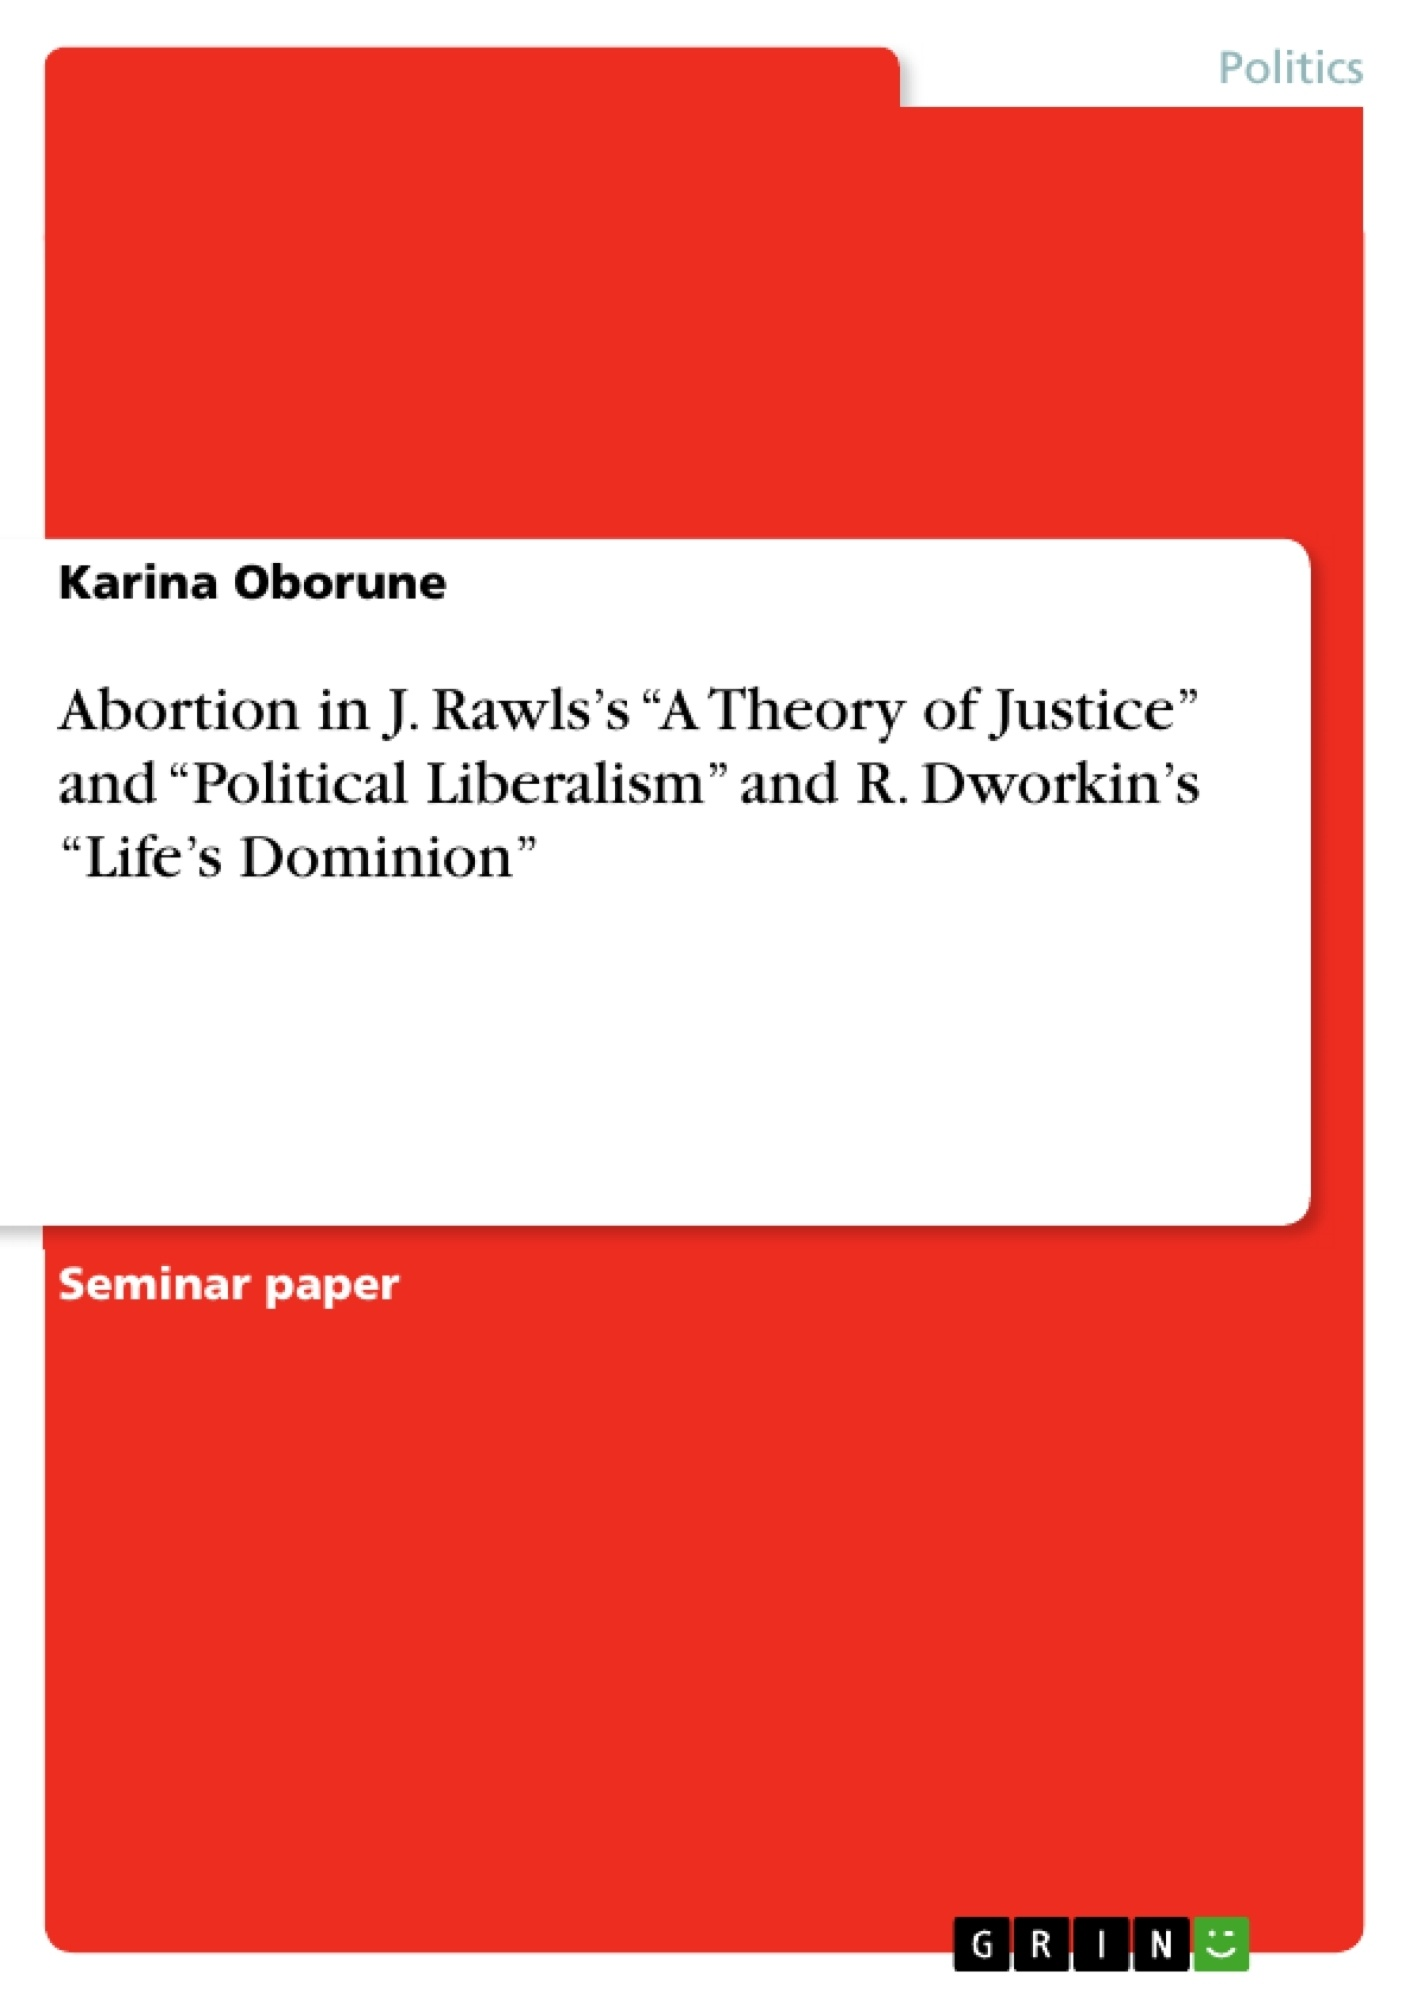 """Title: Abortion in J. Rawls's """"A Theory of Justice"""" and """"Political Liberalism"""" and R. Dworkin's """"Life's Dominion"""""""